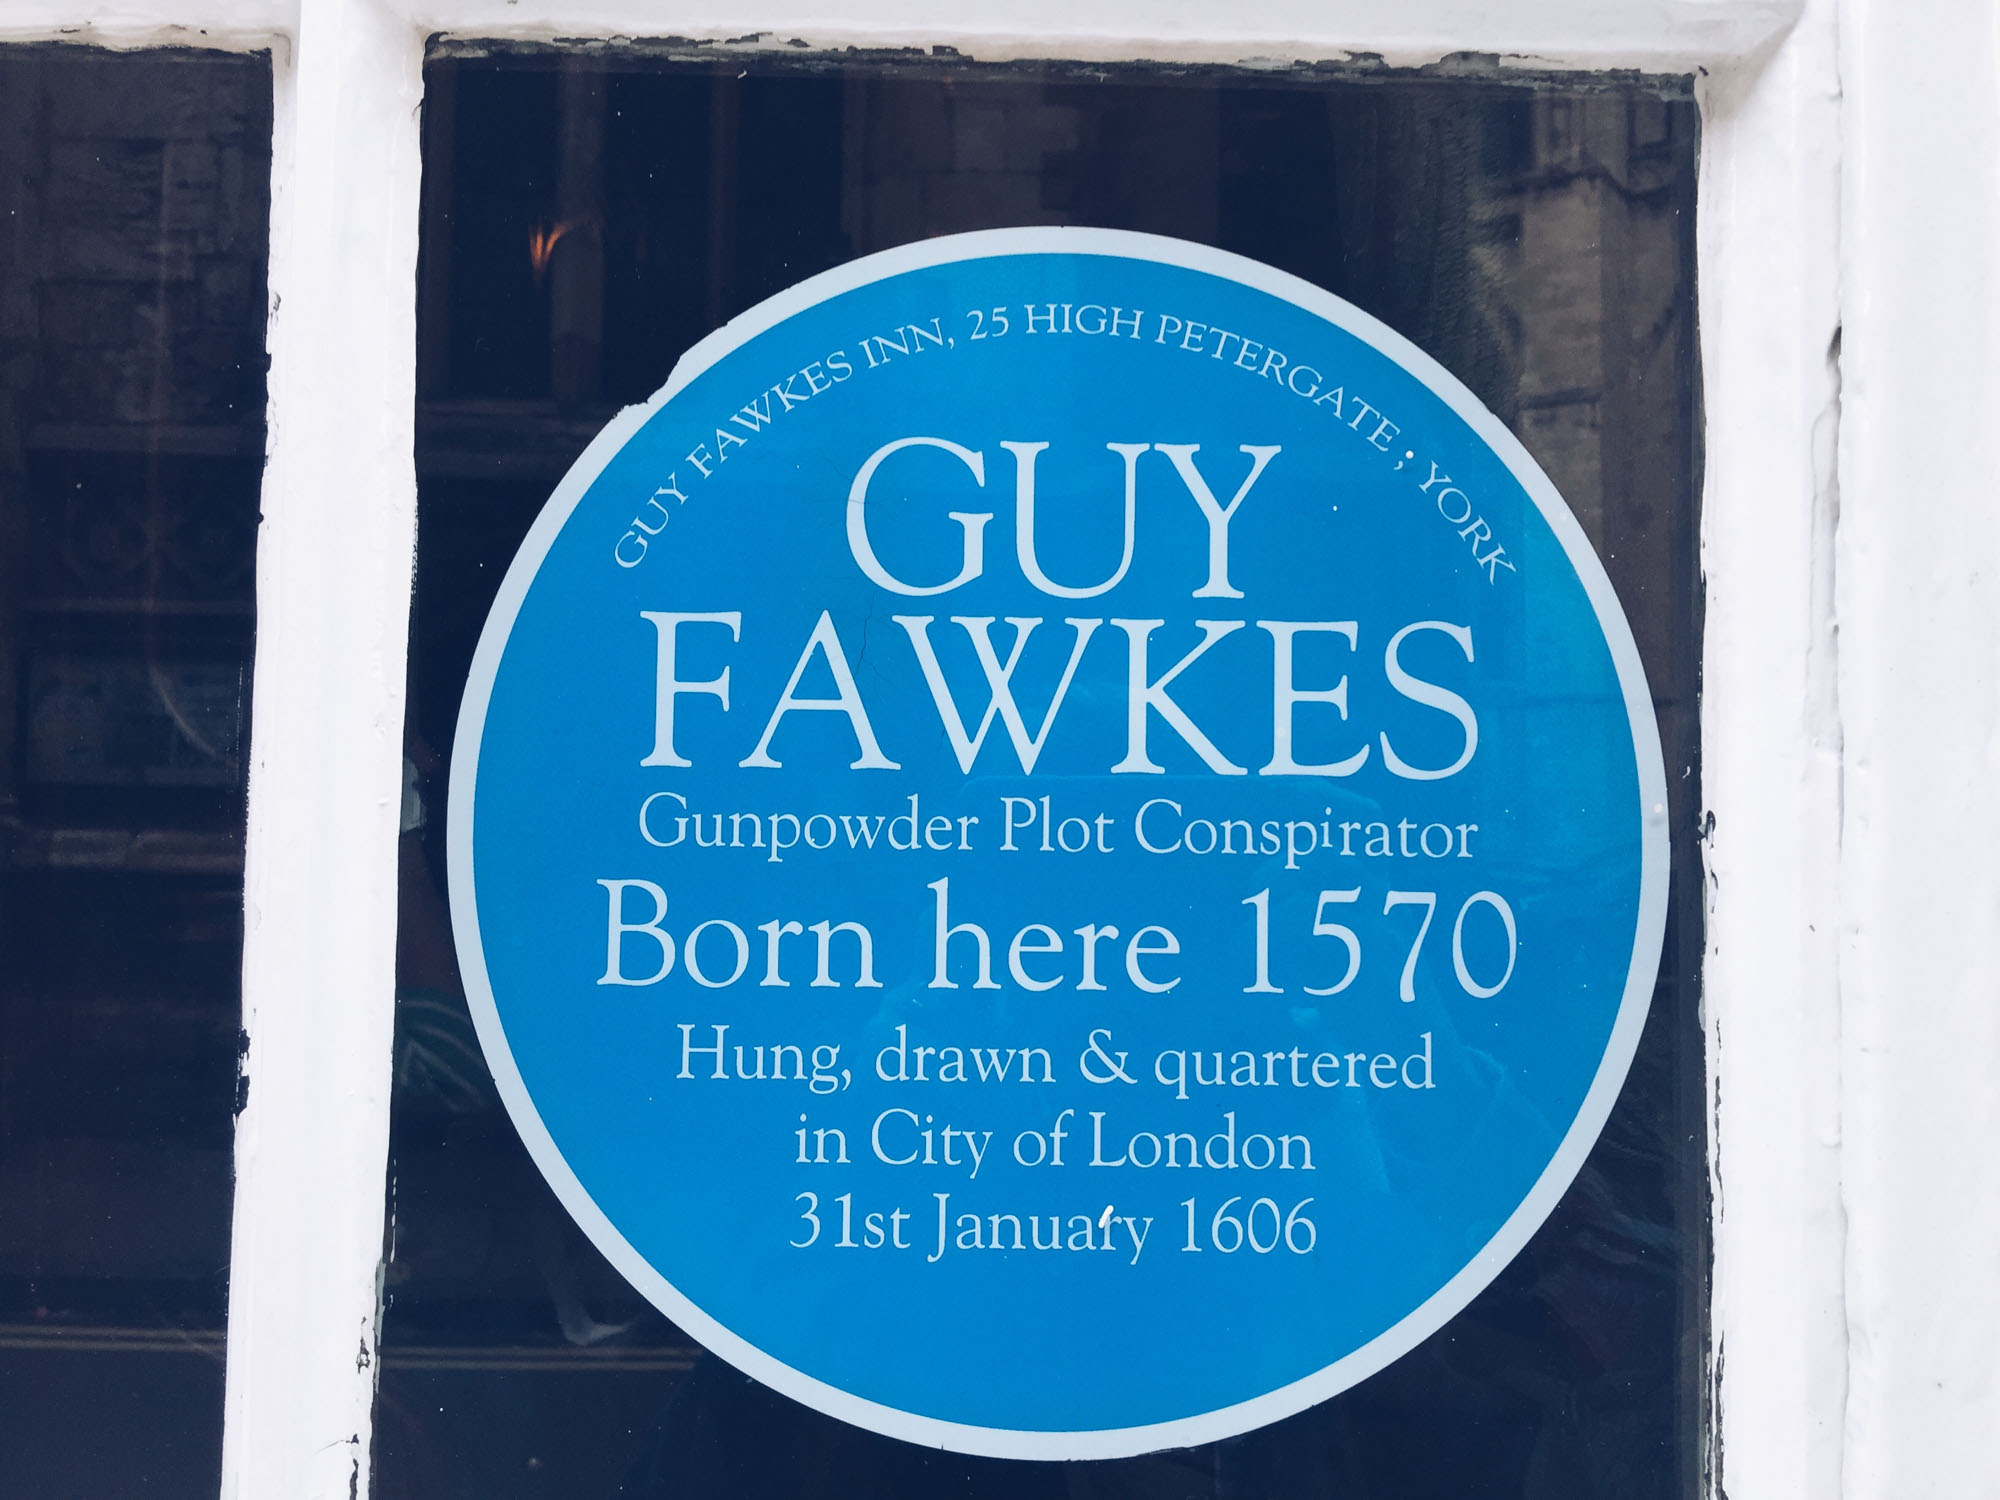 Best things to do in York - 365 pubs - Guy Fawkes Inn